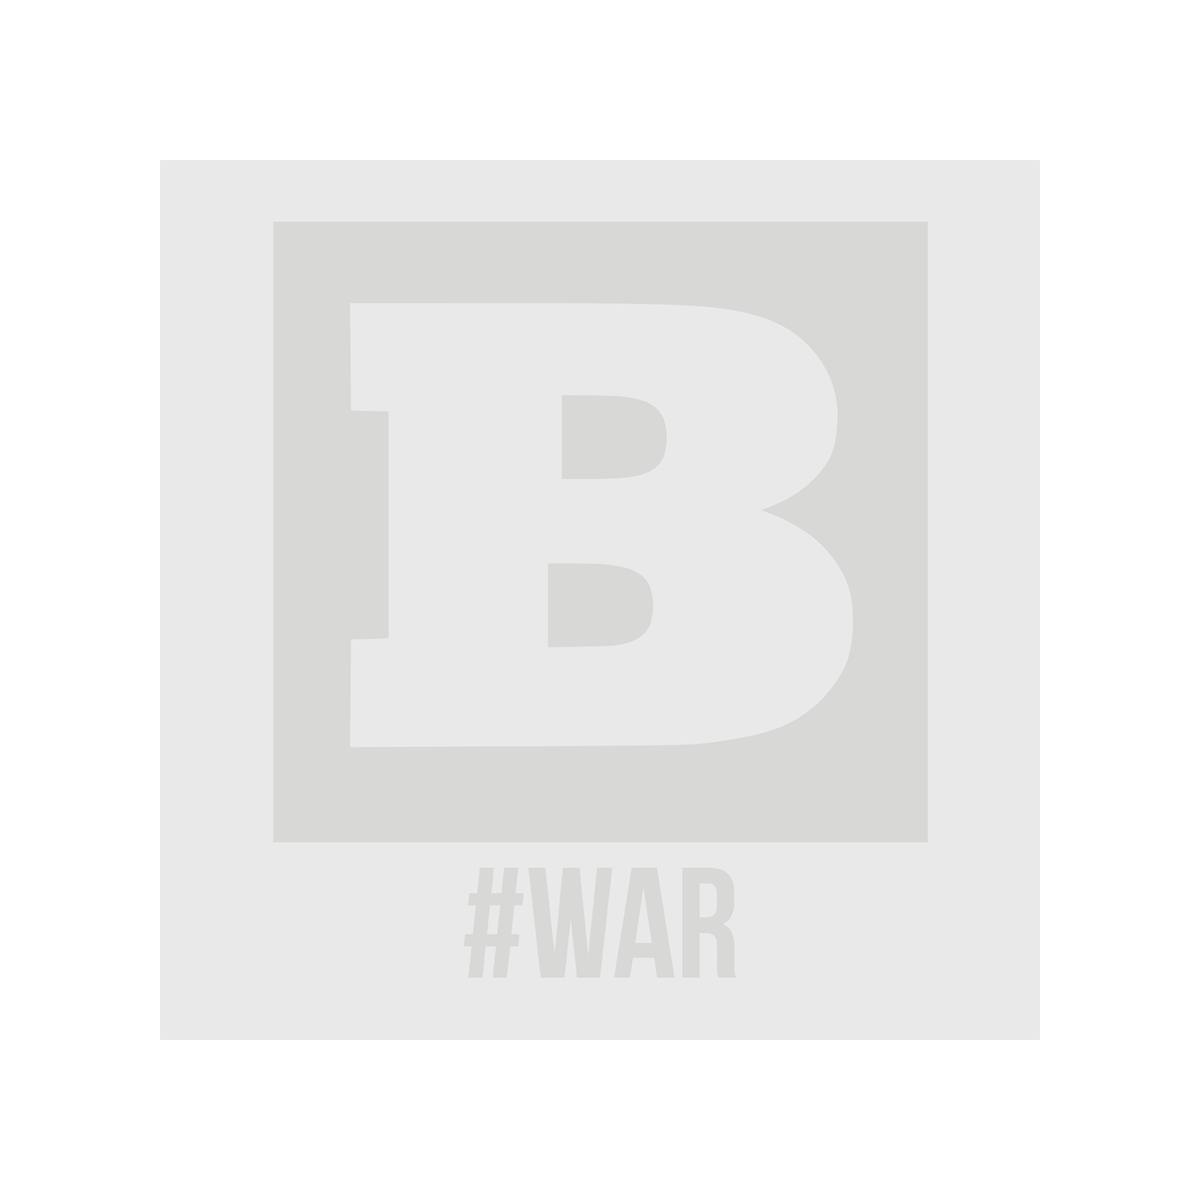 Breitbart #WAR Women's T-Shirt - White